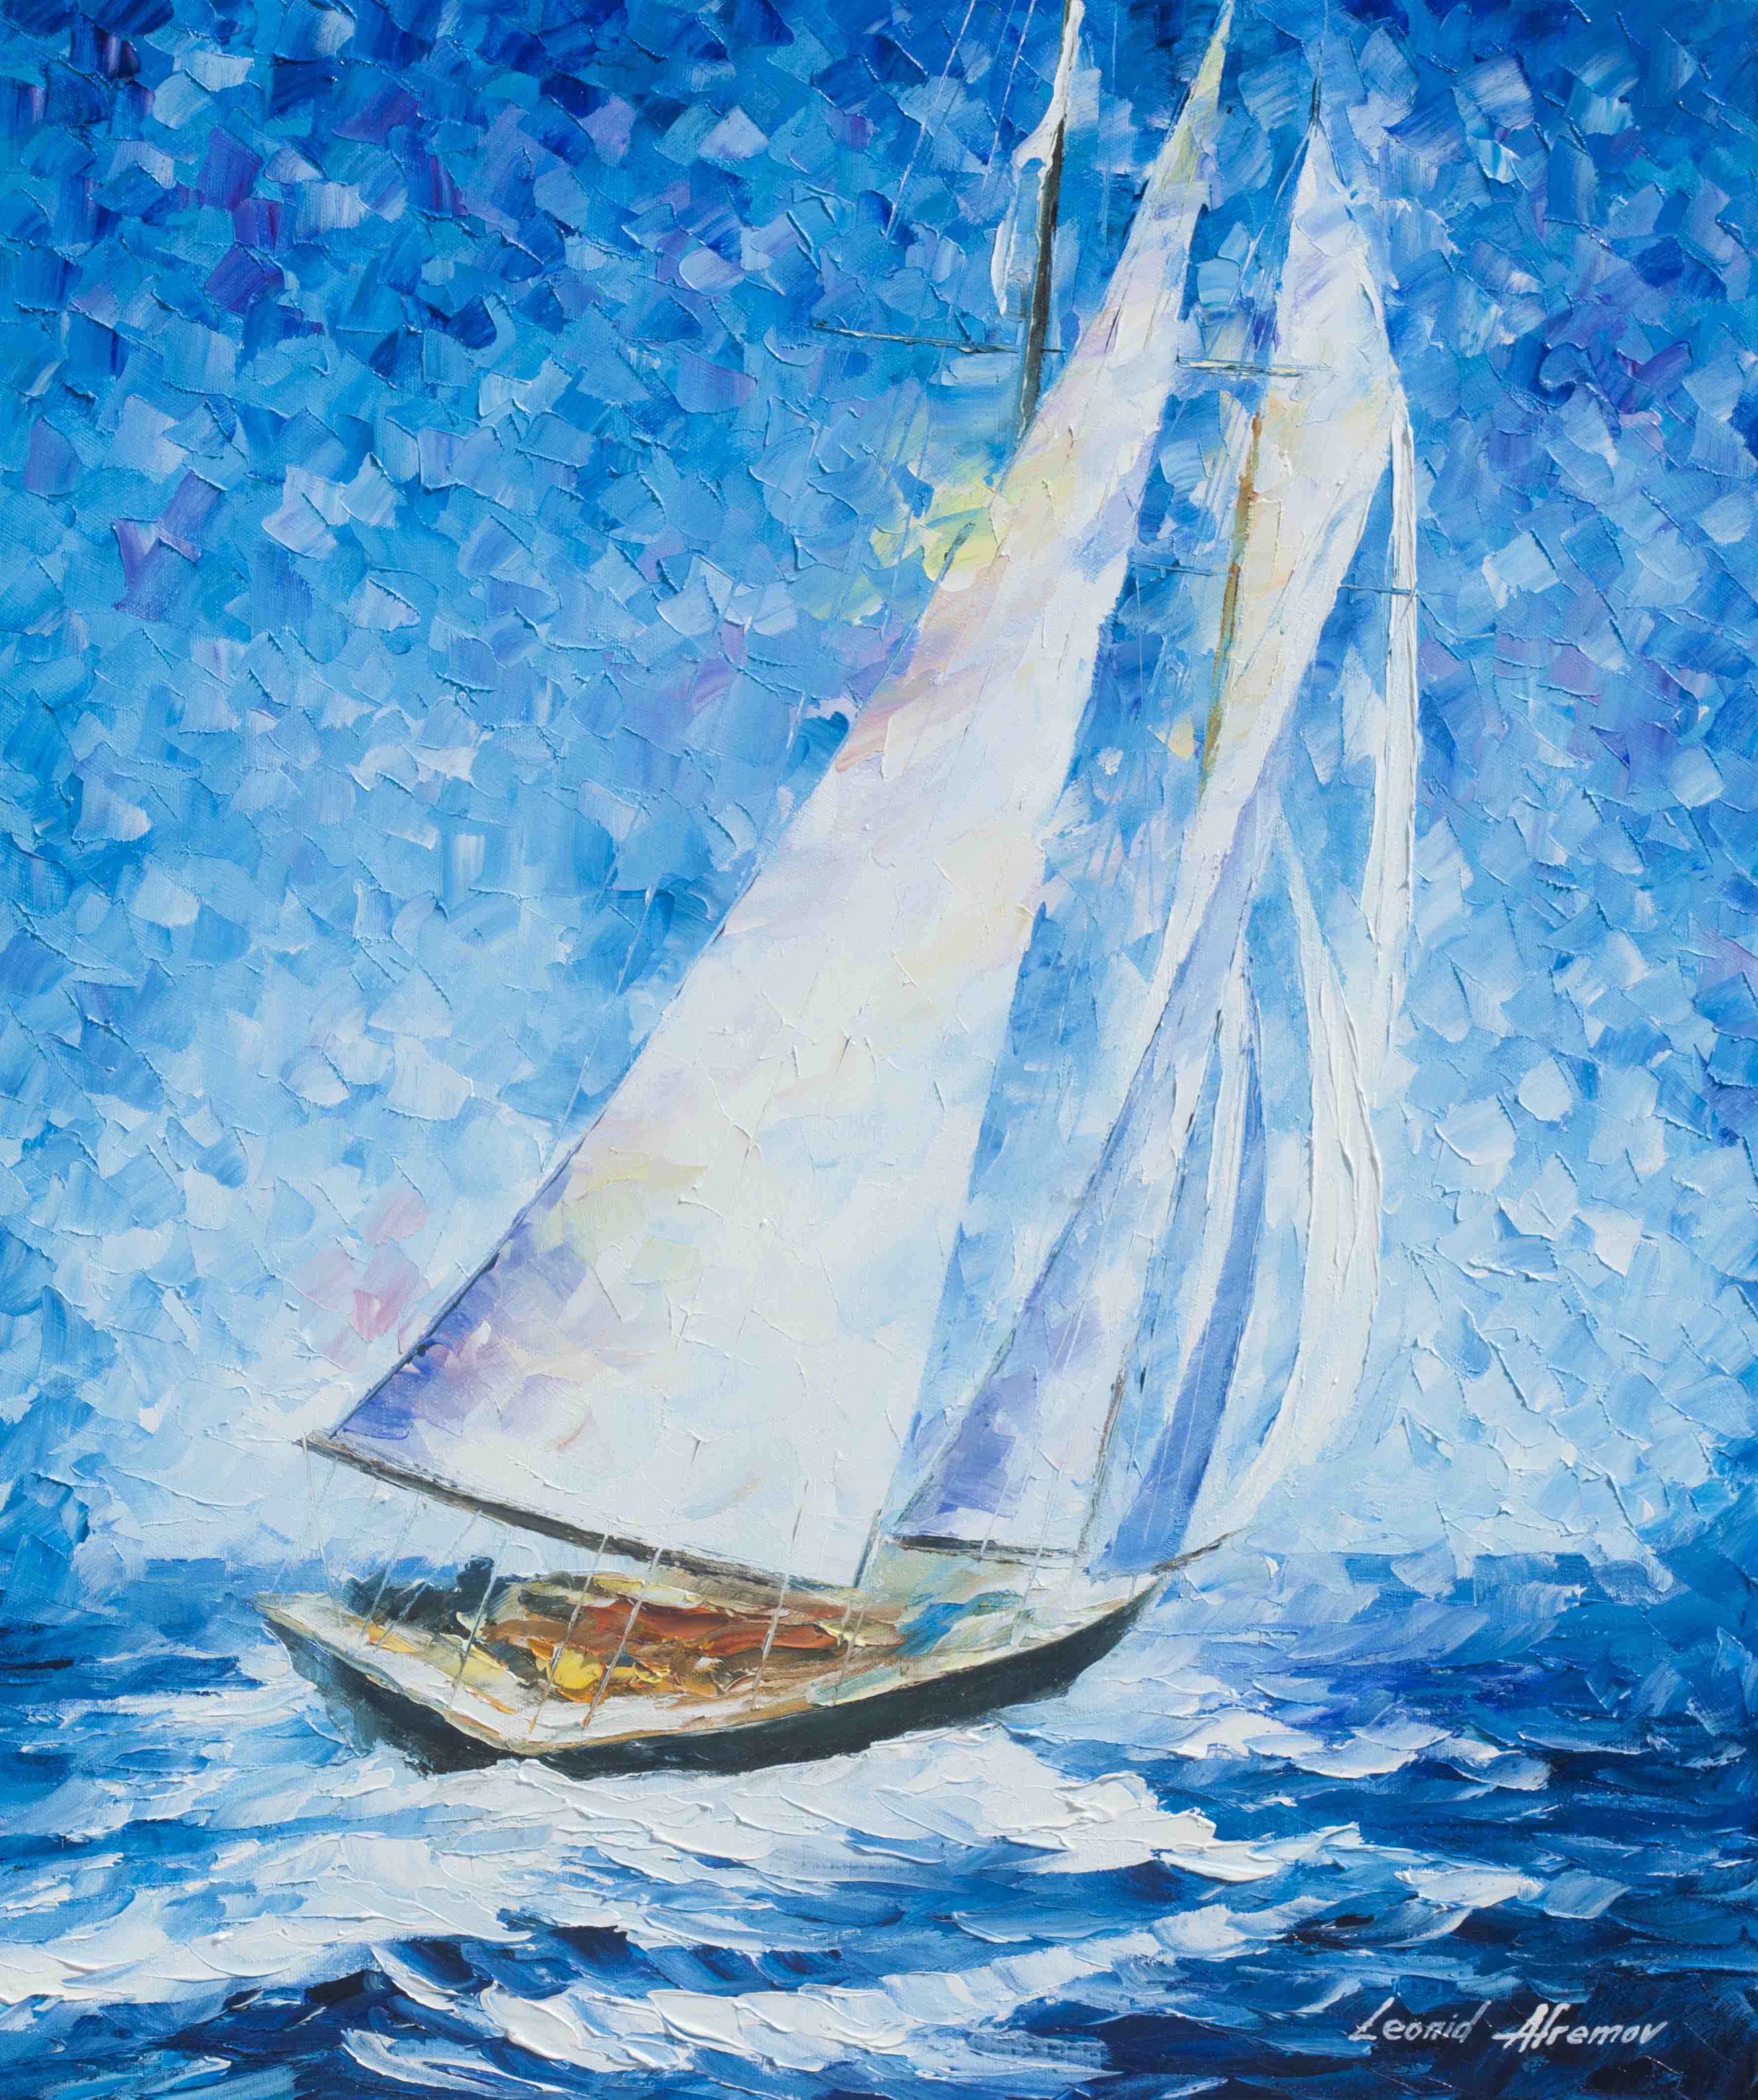 PLAYA DEL CARMEN SAILING -  PALETTE KNIFE Oil Painting On Canvas By Leonid afremov size 30x40